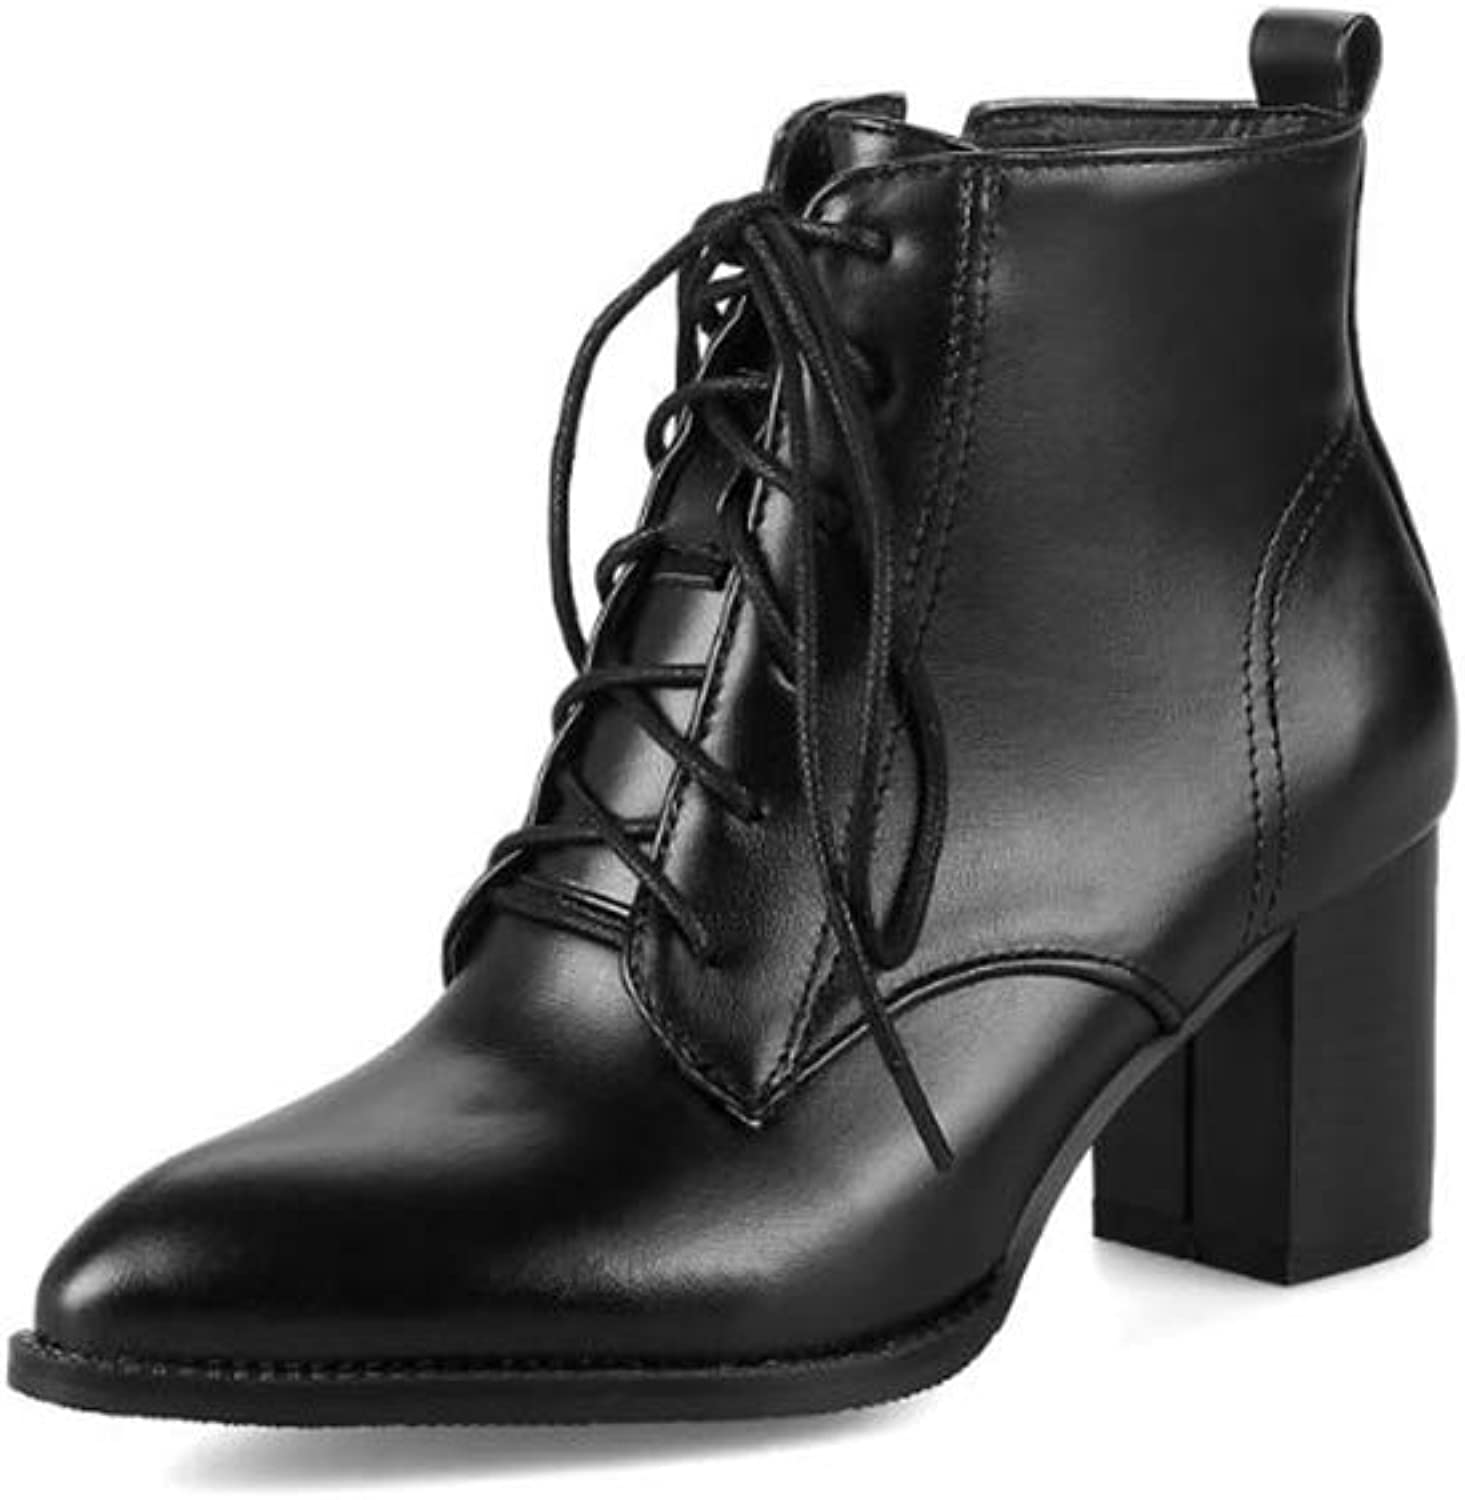 Super explosion Fashion Women's Comfort Lace-up Zipper Platform Chunky High Heel Ankle Boots